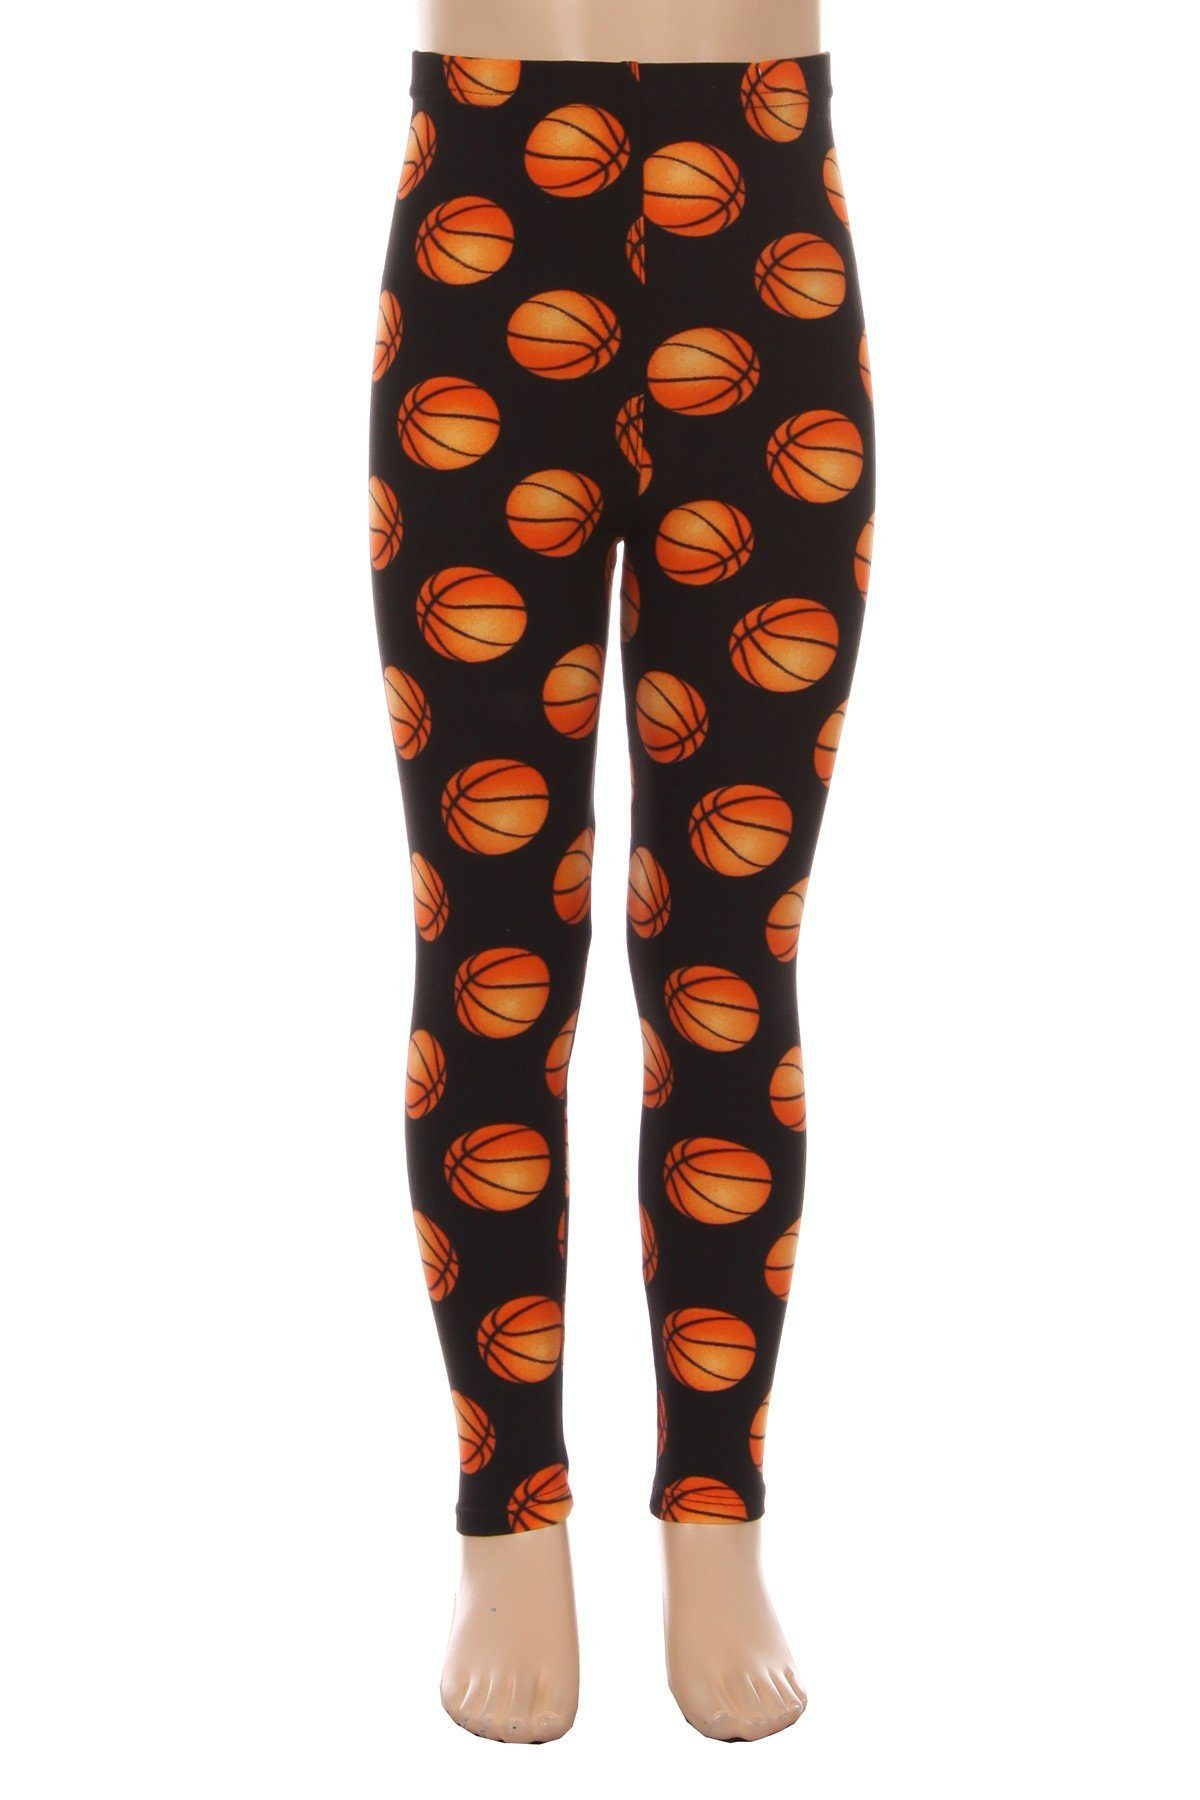 Girl's Basketballs Leggings Black/Orange: S/L - MomMe and More